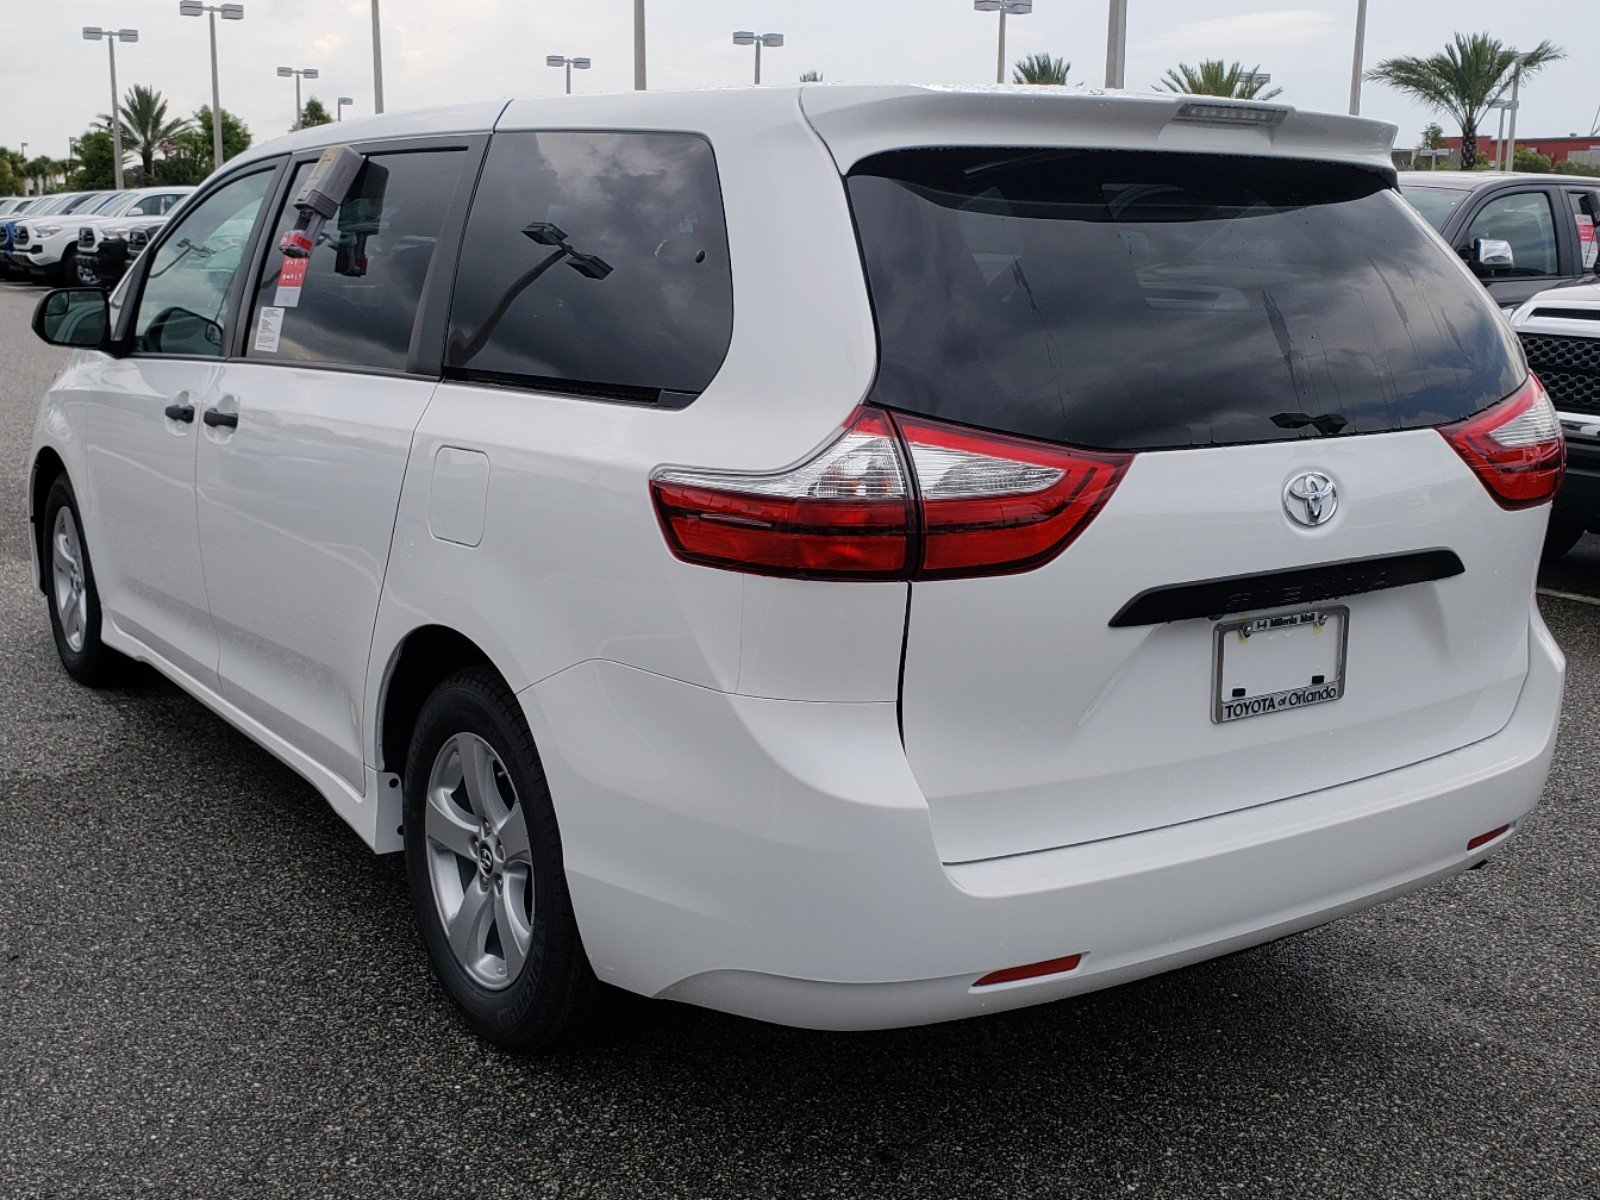 Toyota Sienna 2010-2018 Owners Manual: Audio system